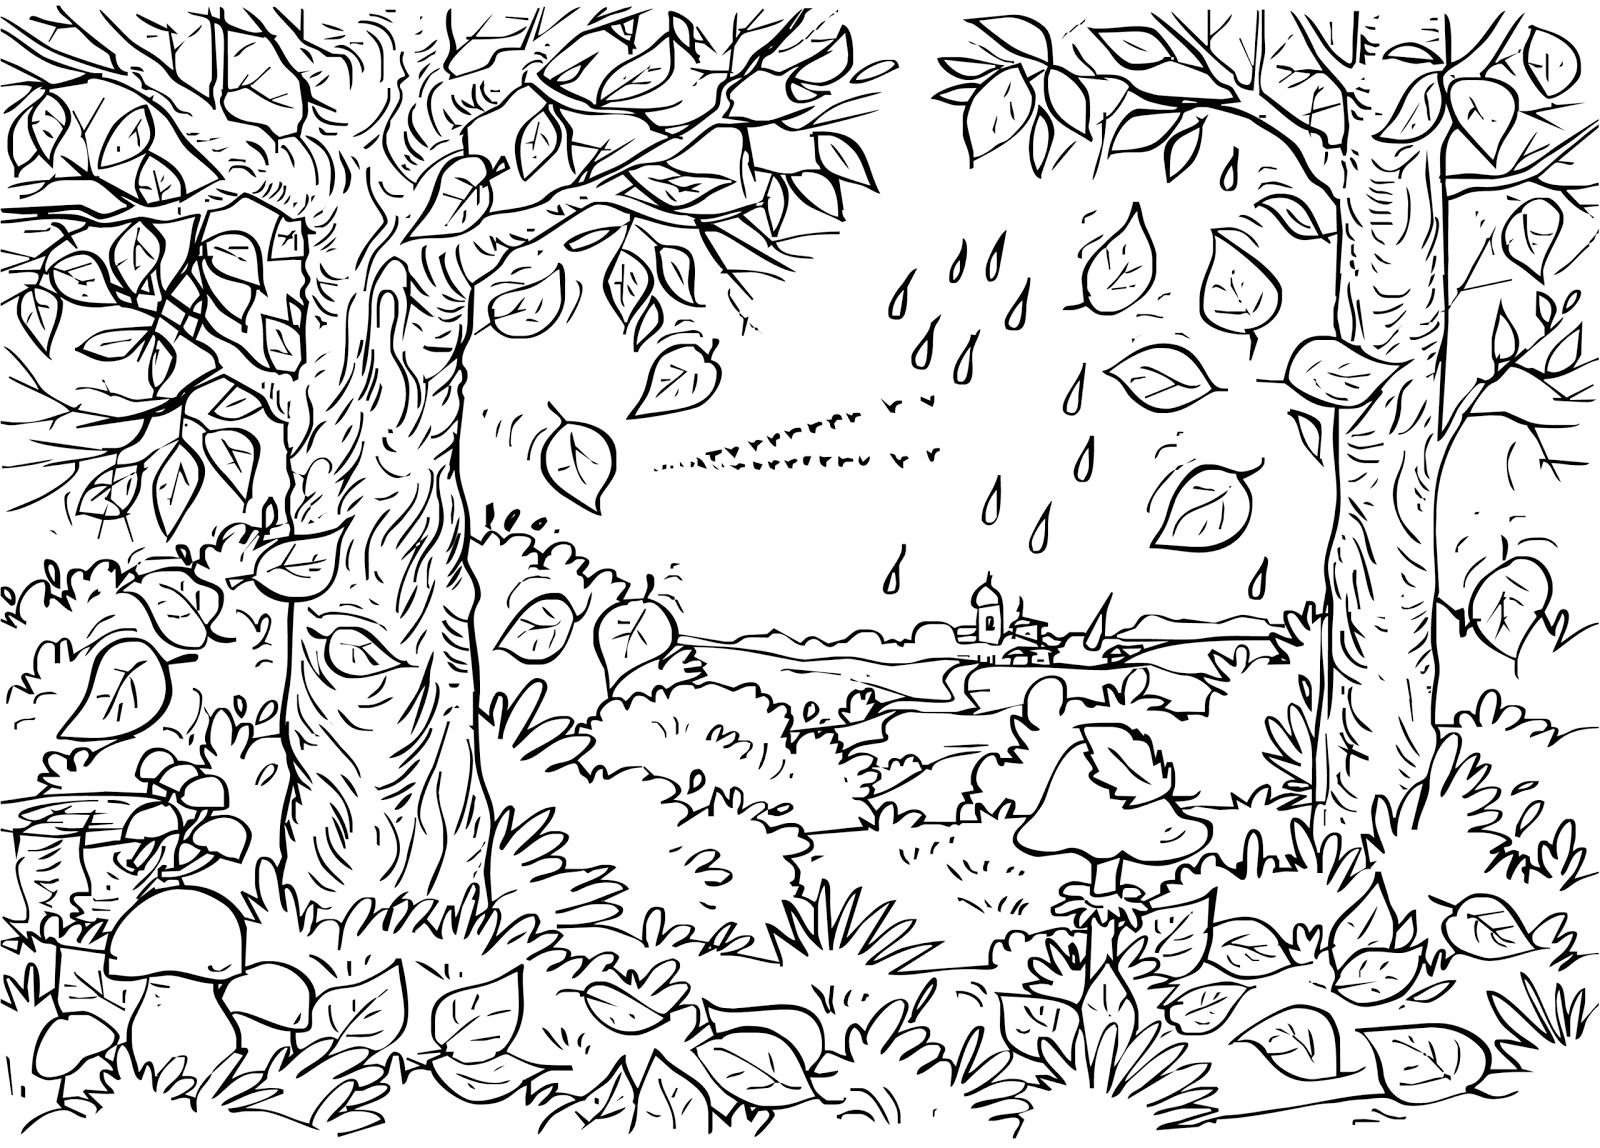 forest coloring page forest 32 nature printable coloring pages forest coloring page